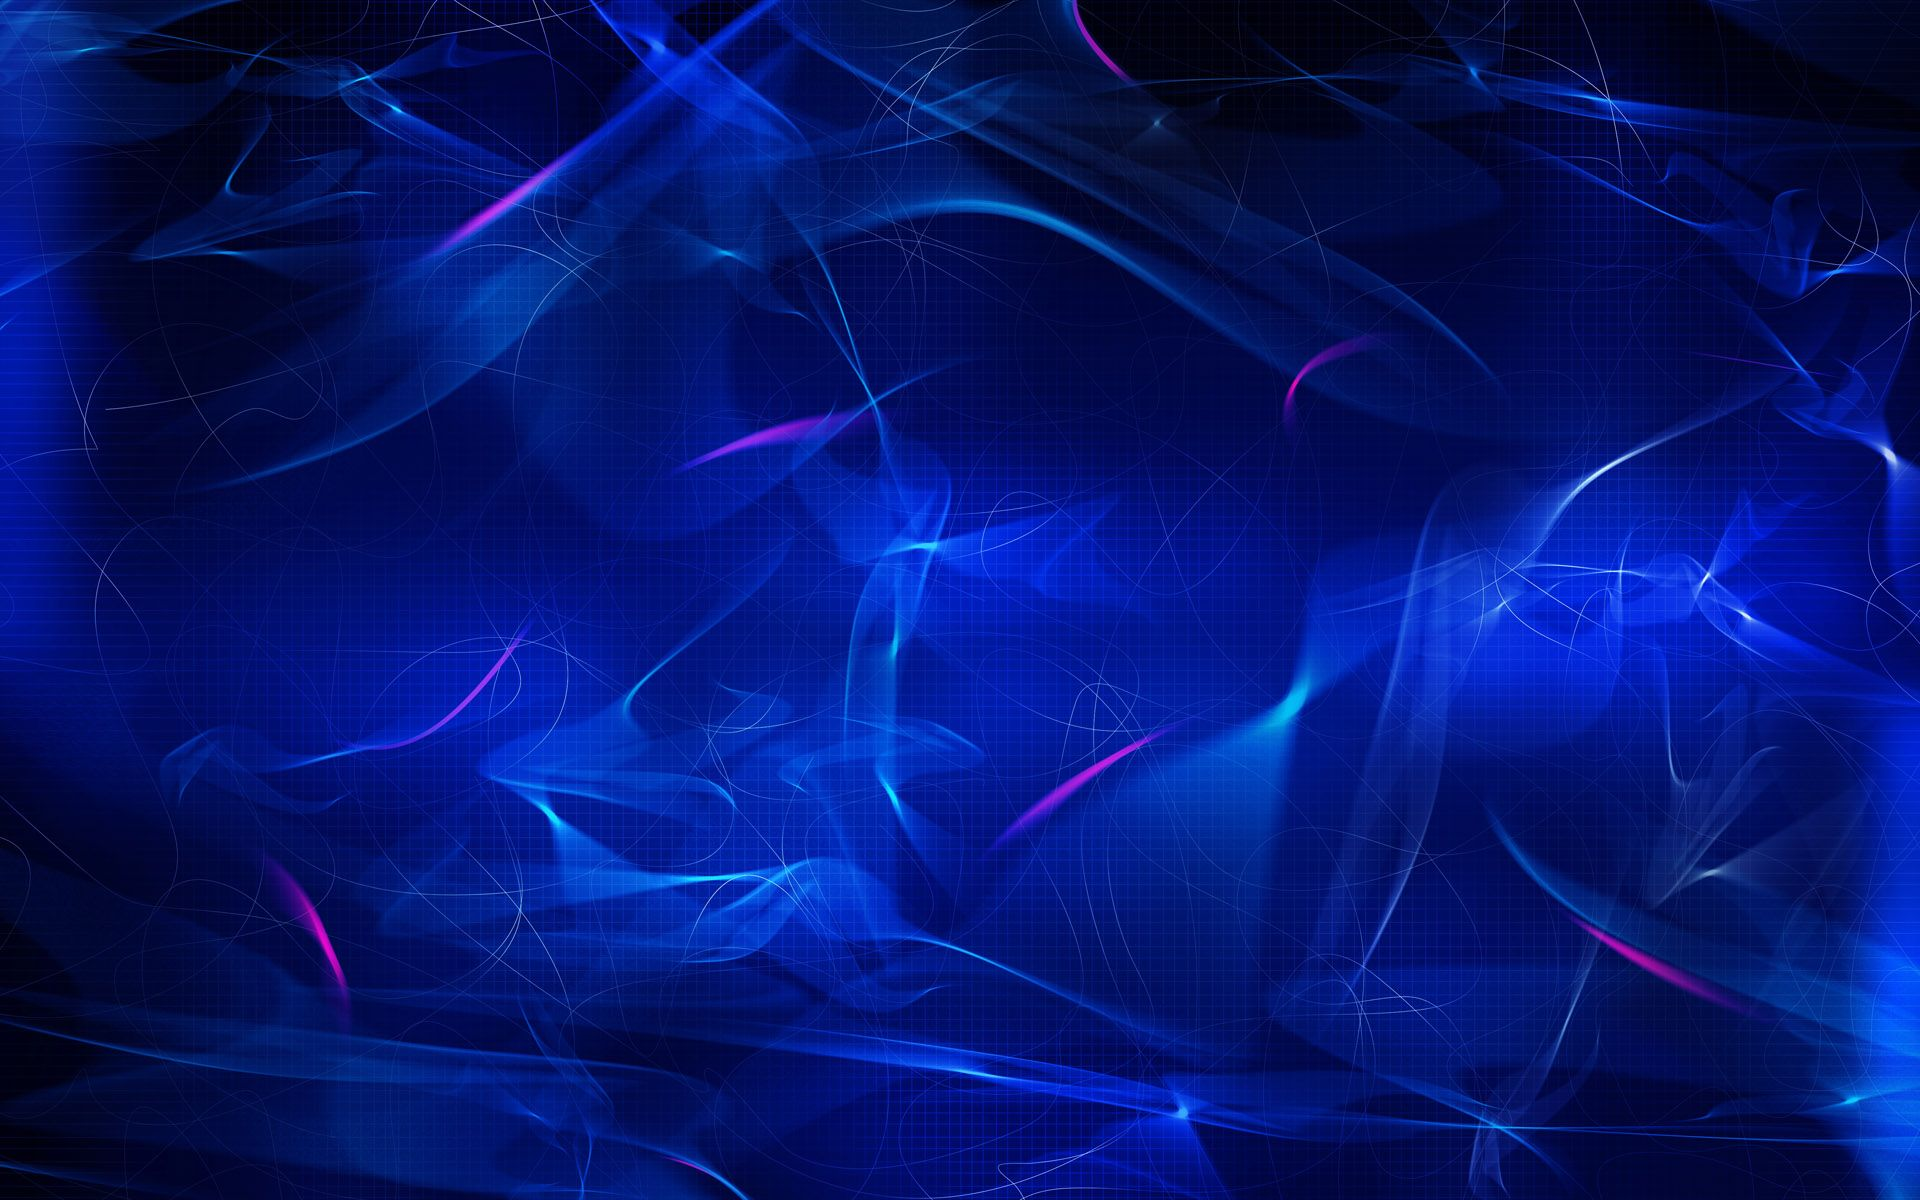 Blue 1920x1200 Deep Blue Digital Desktop Pc And Mac Wallpaper Blue Wallpapers Blue Background Wallpapers Cool Blue Wallpaper